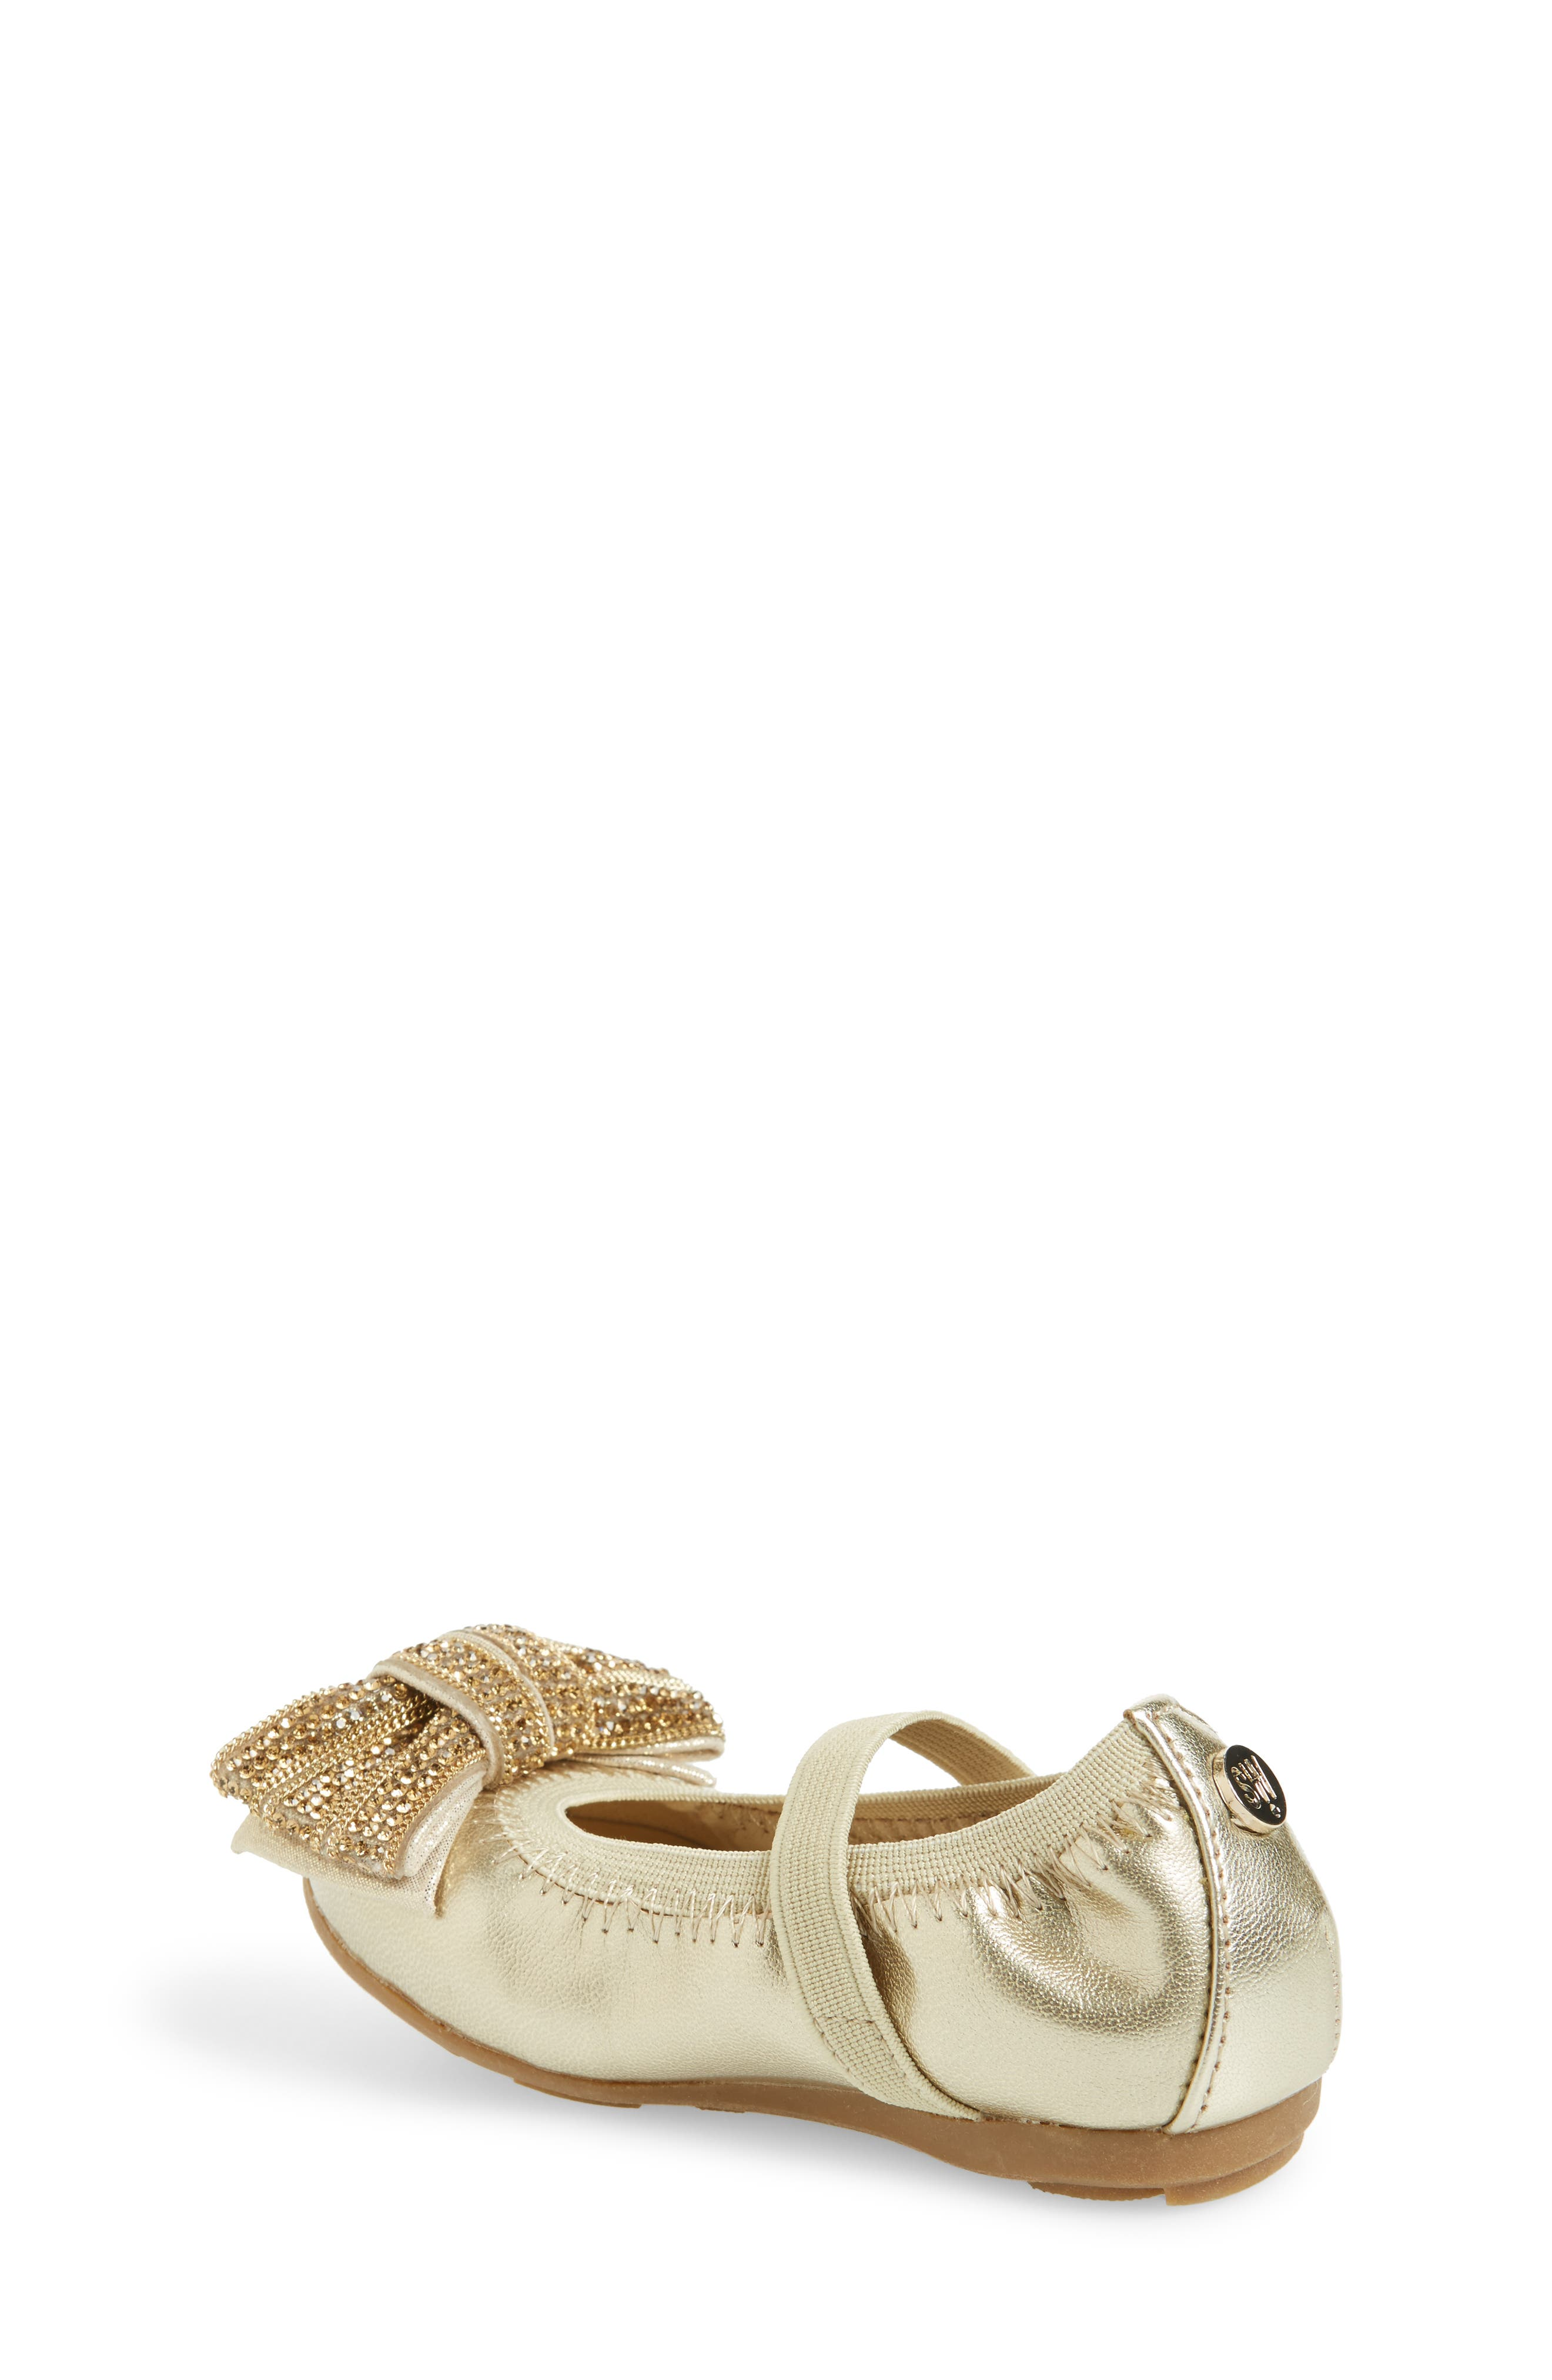 Fannie Embellished Bow Mary Jane Flat,                             Alternate thumbnail 6, color,